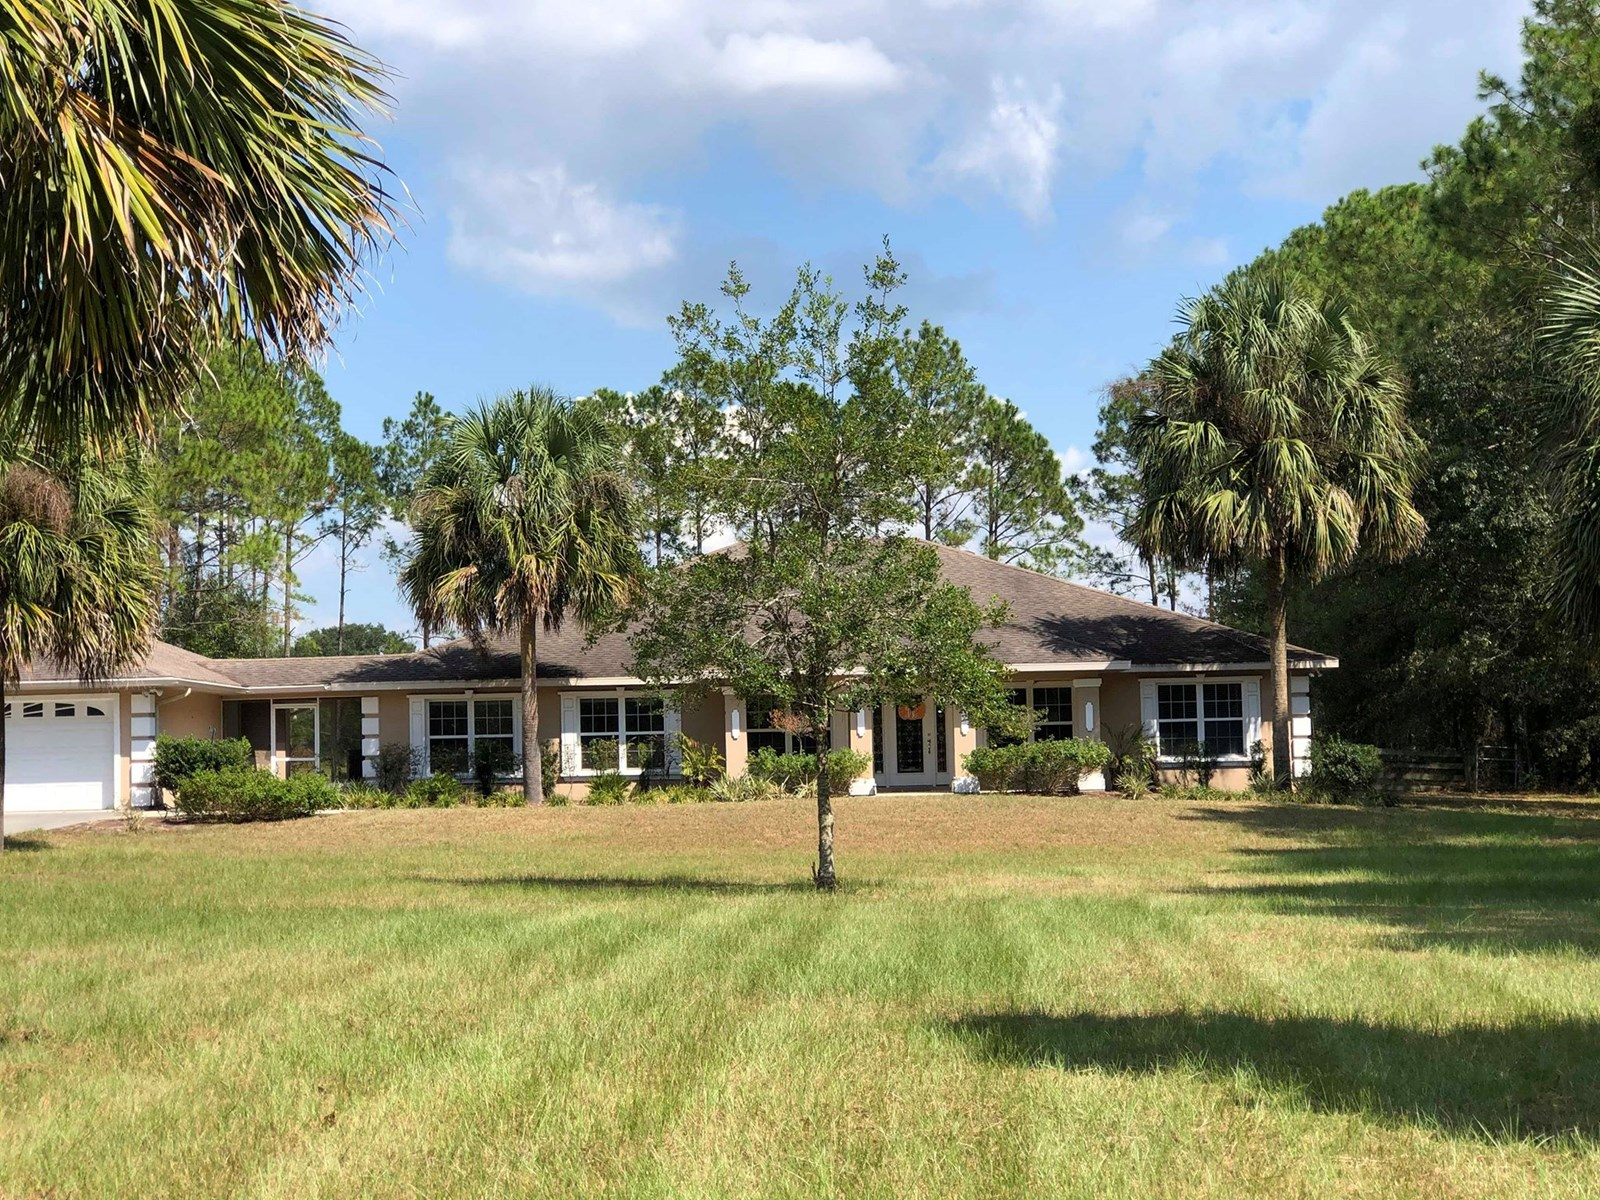 5BR/4BA 2,865 sq.' SPLIT PLAN home w/POOL on 2 ACRES